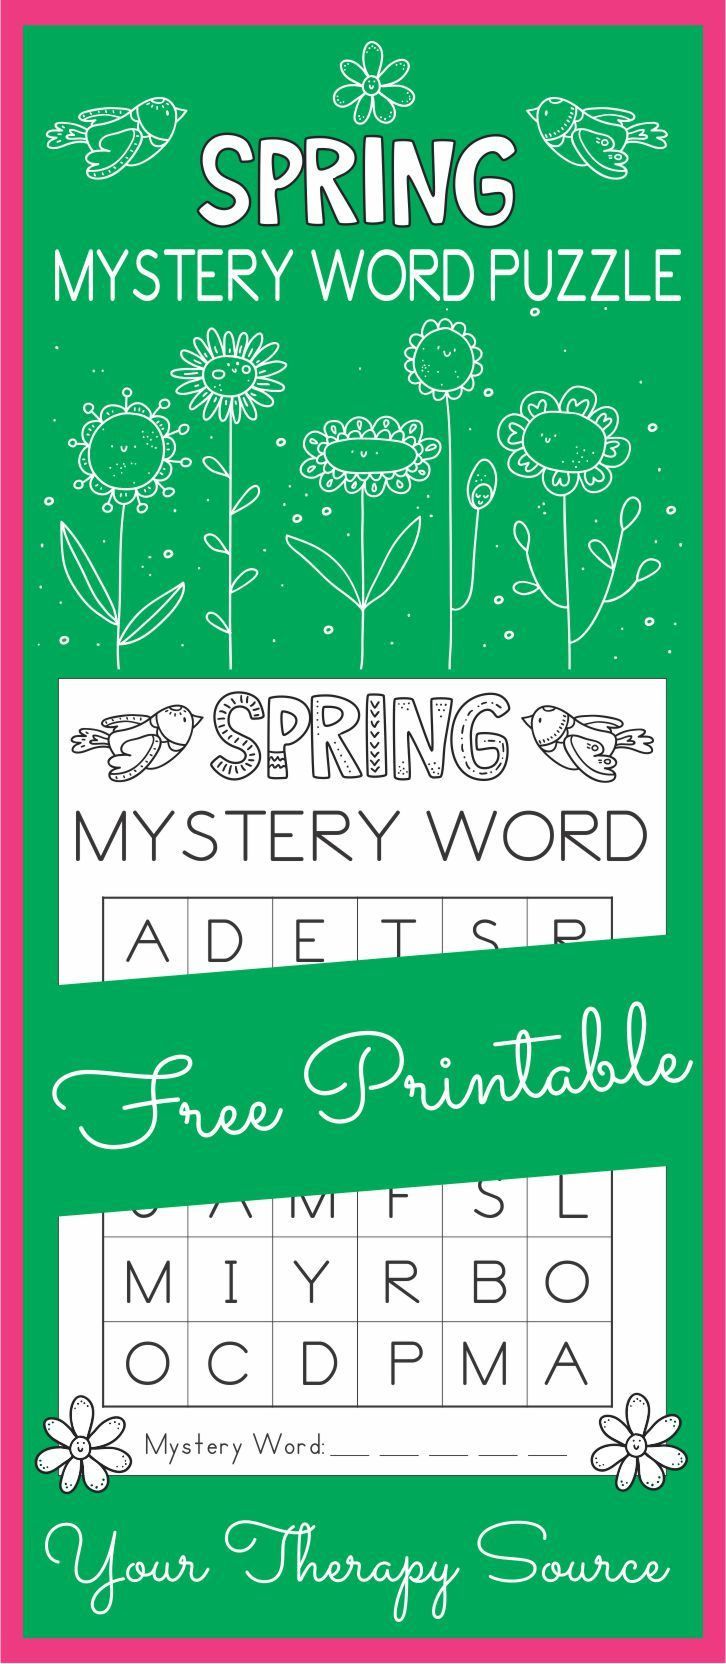 Spring Mystery Word Visual Perceptual Puzzle - challenge discrimination, visual scanning, letter recognition and visual motor skills all on ONE puzzle page.  Great for early finishers, indoor recess or morning work!  Would be a fun challenge for pediatric occupational therapy!